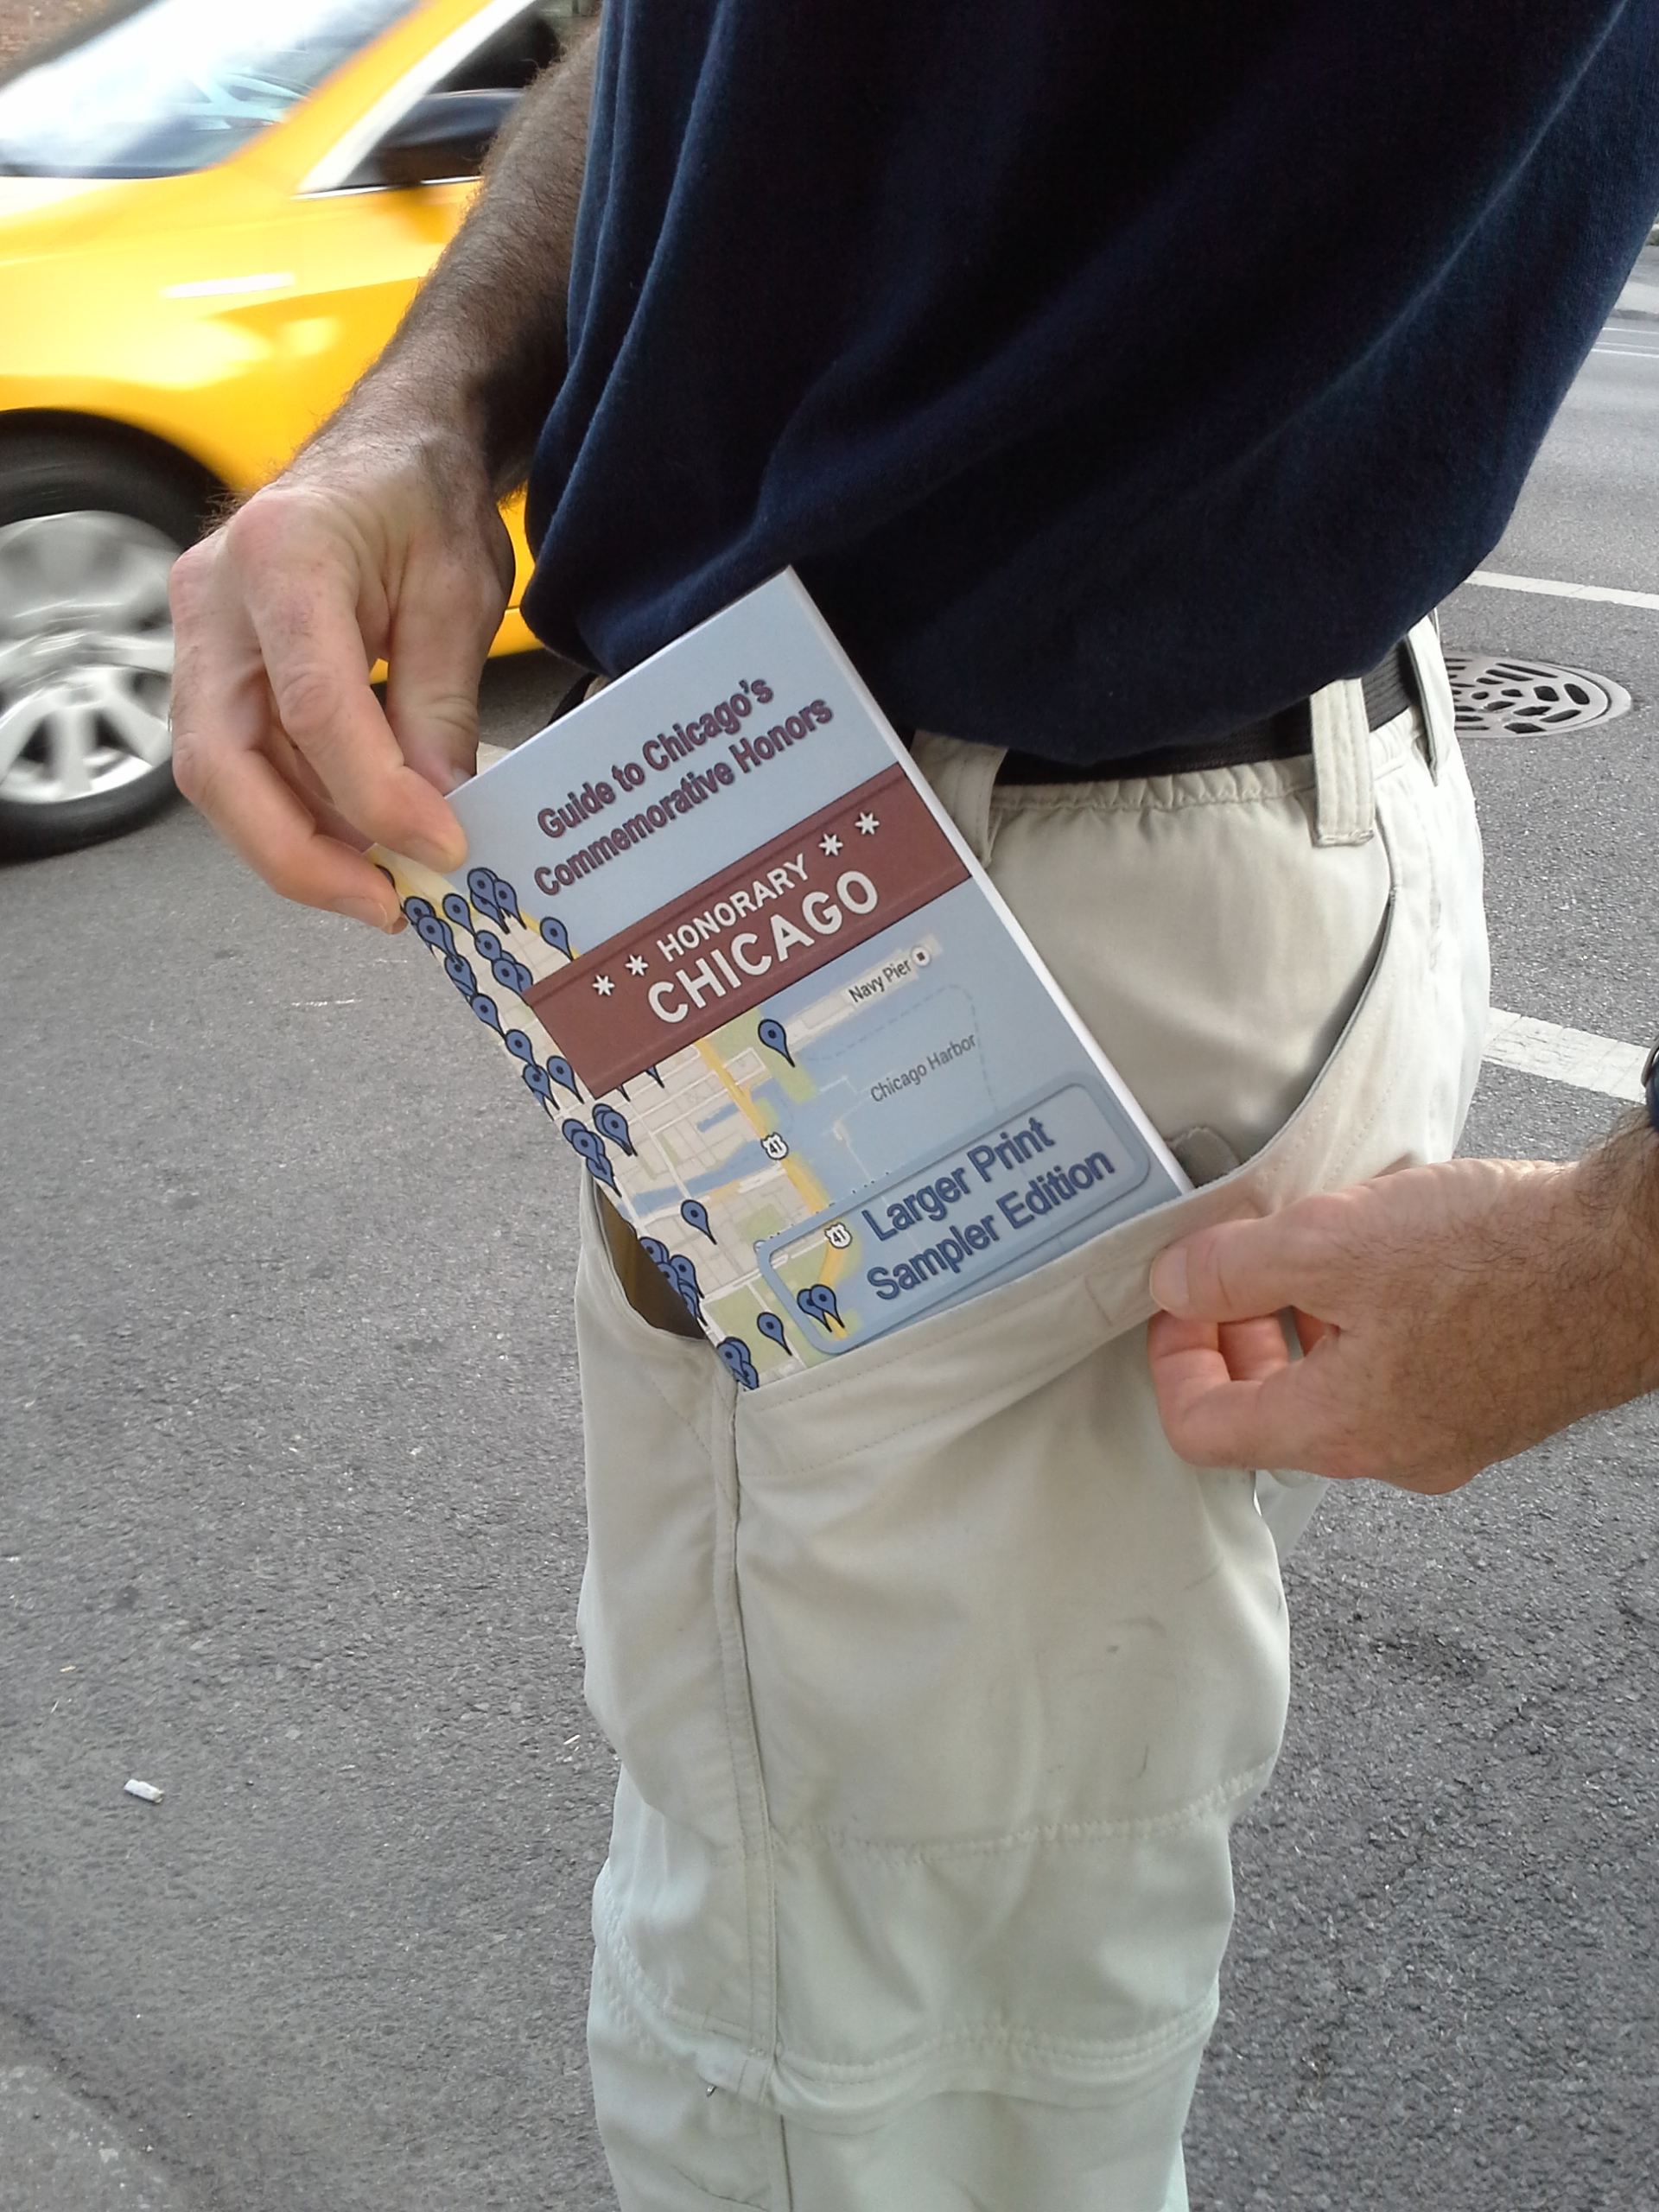 Honorary Chicago Guidebook - pocket size